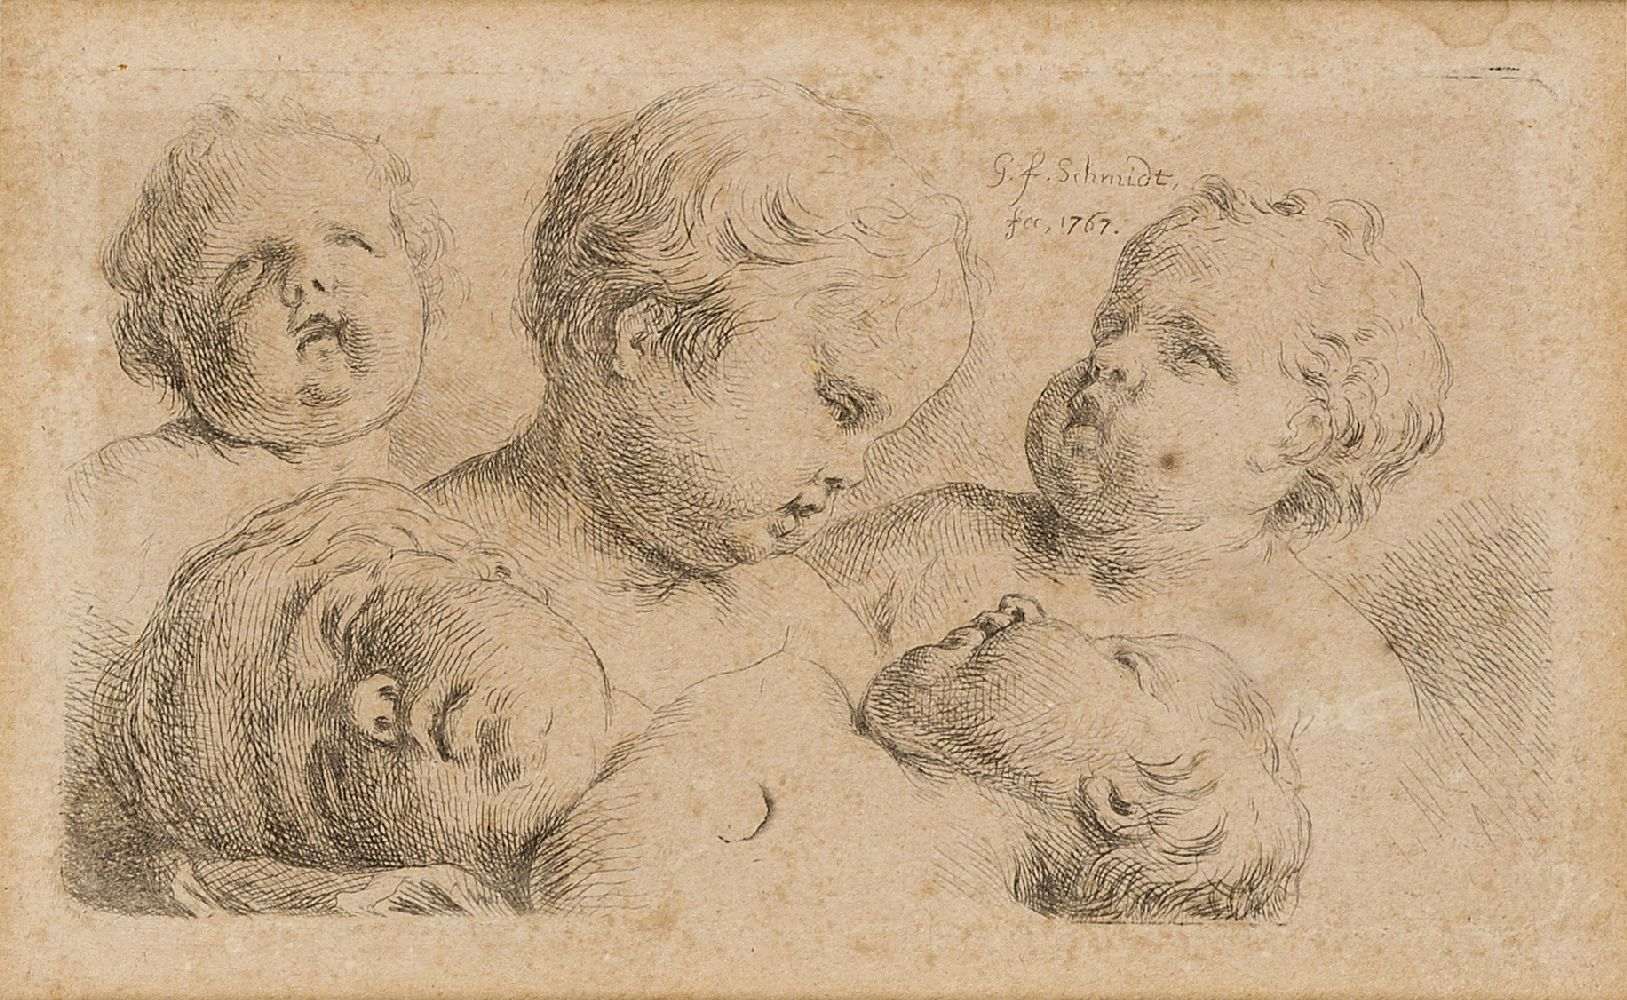 Georg Friedrich Schmidt, German 1712-1775- The heads of five putti; engraving, signed and dated 1767 - Image 2 of 3